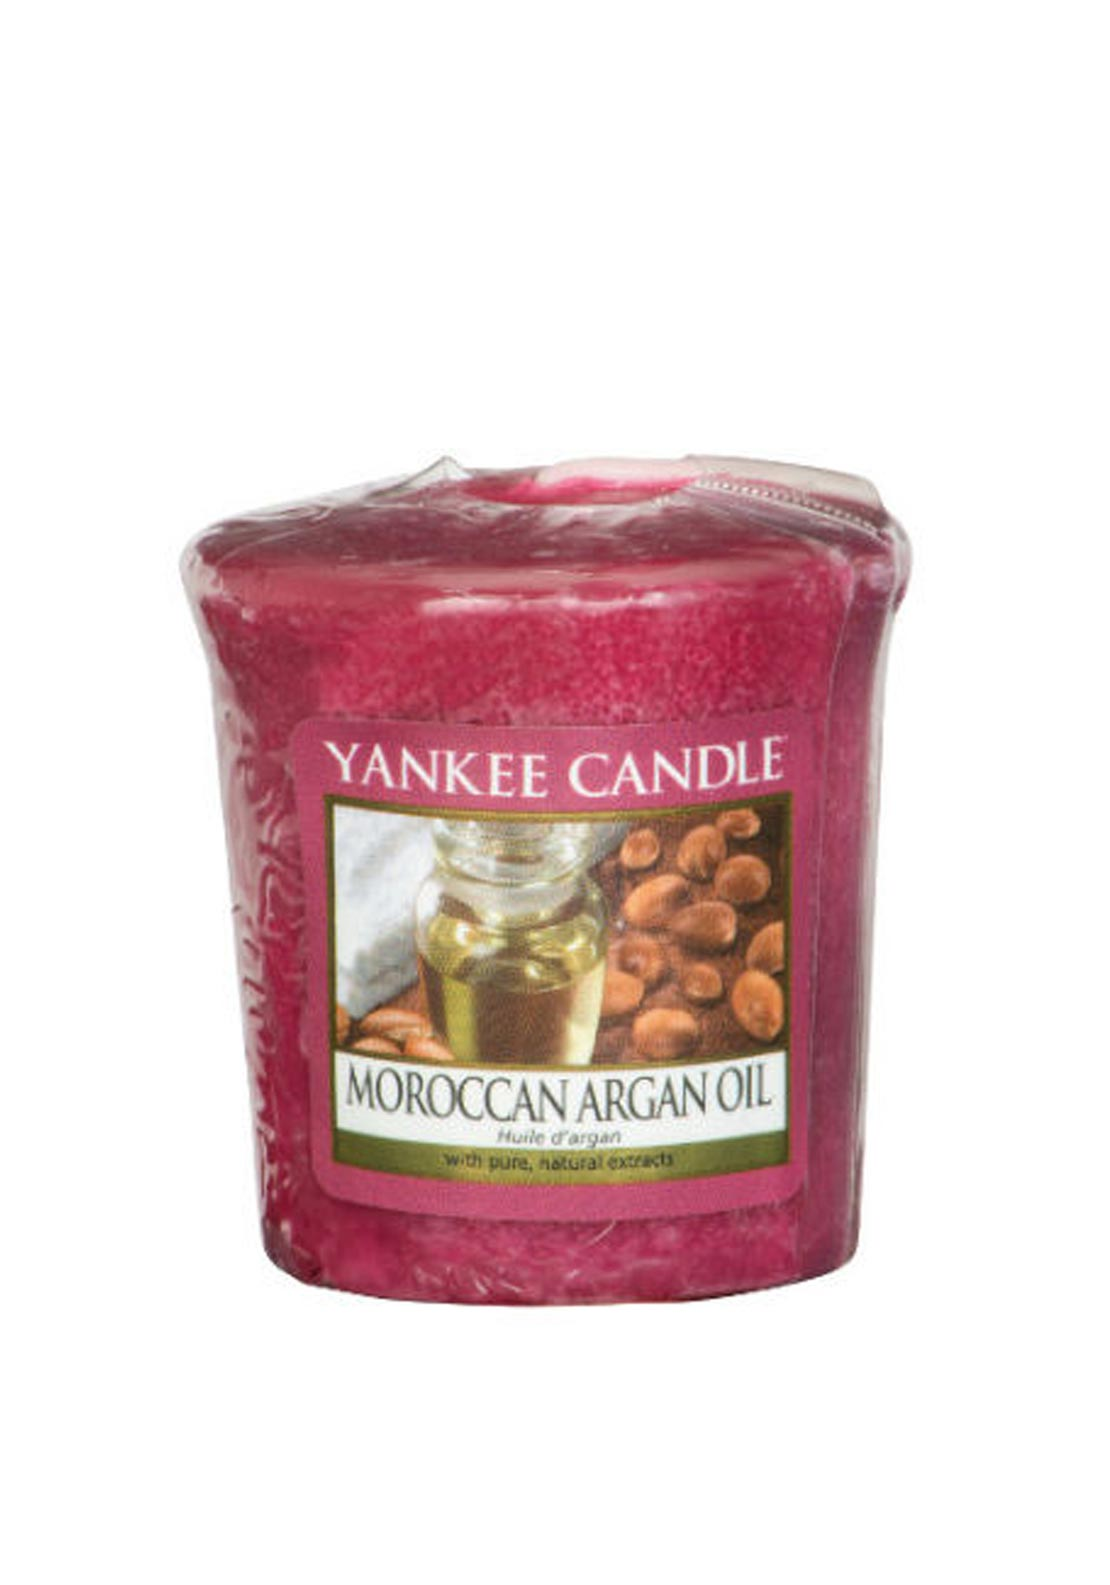 Yankee Candle Sample Votive Candle, Moroccan Argan Oil